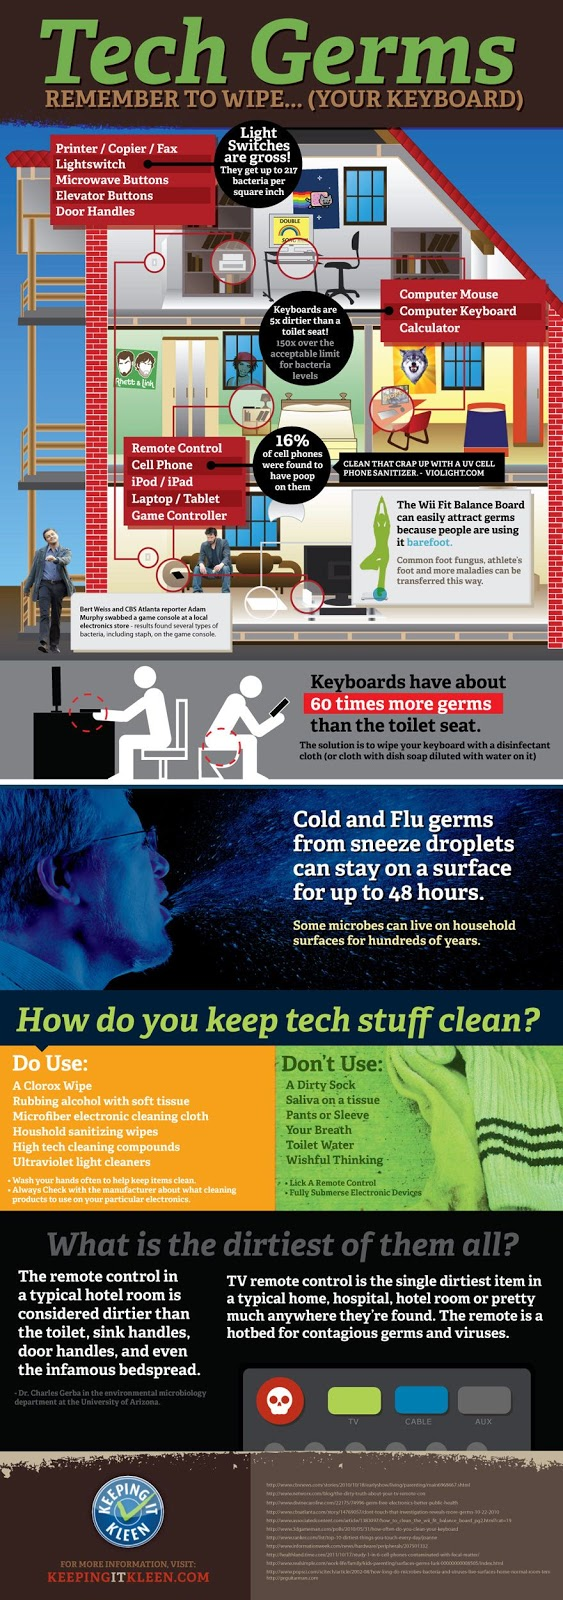 High-Tech Hardware Have High-End Virus! Keep These Tech Germs Clean & Be Healthy [Infographic] 1